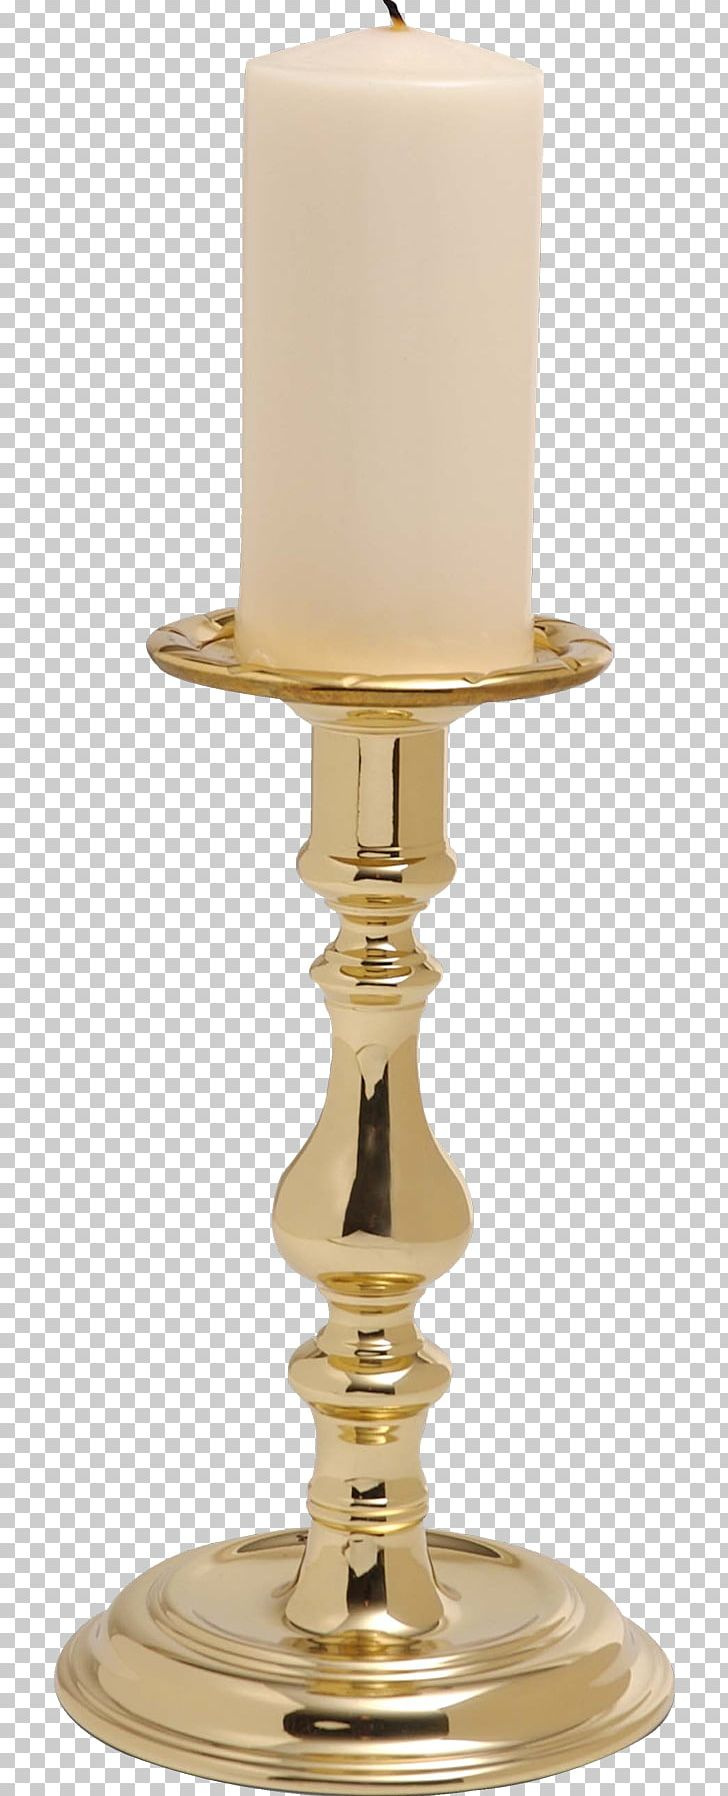 Candlestick Table Tealight Glass PNG, Clipart, Brass, Candelabra, Candle, Candles, Candlestick Free PNG Download